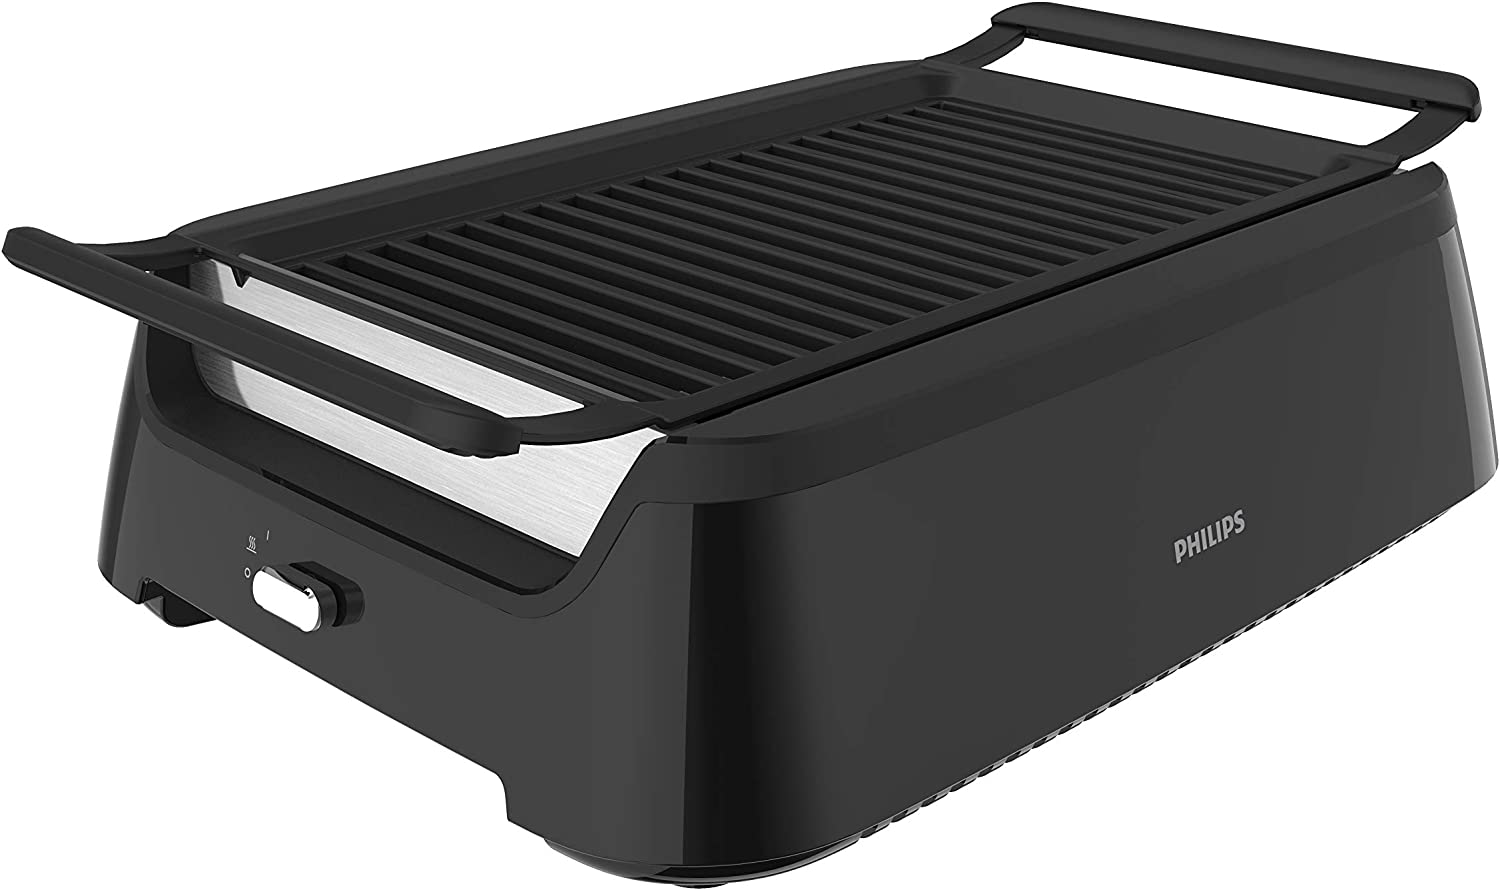 Philips Redigrill Smoke-Less Infrared Grill. Best New Small Kitchen Appliances — Reviewing Indoor Grills